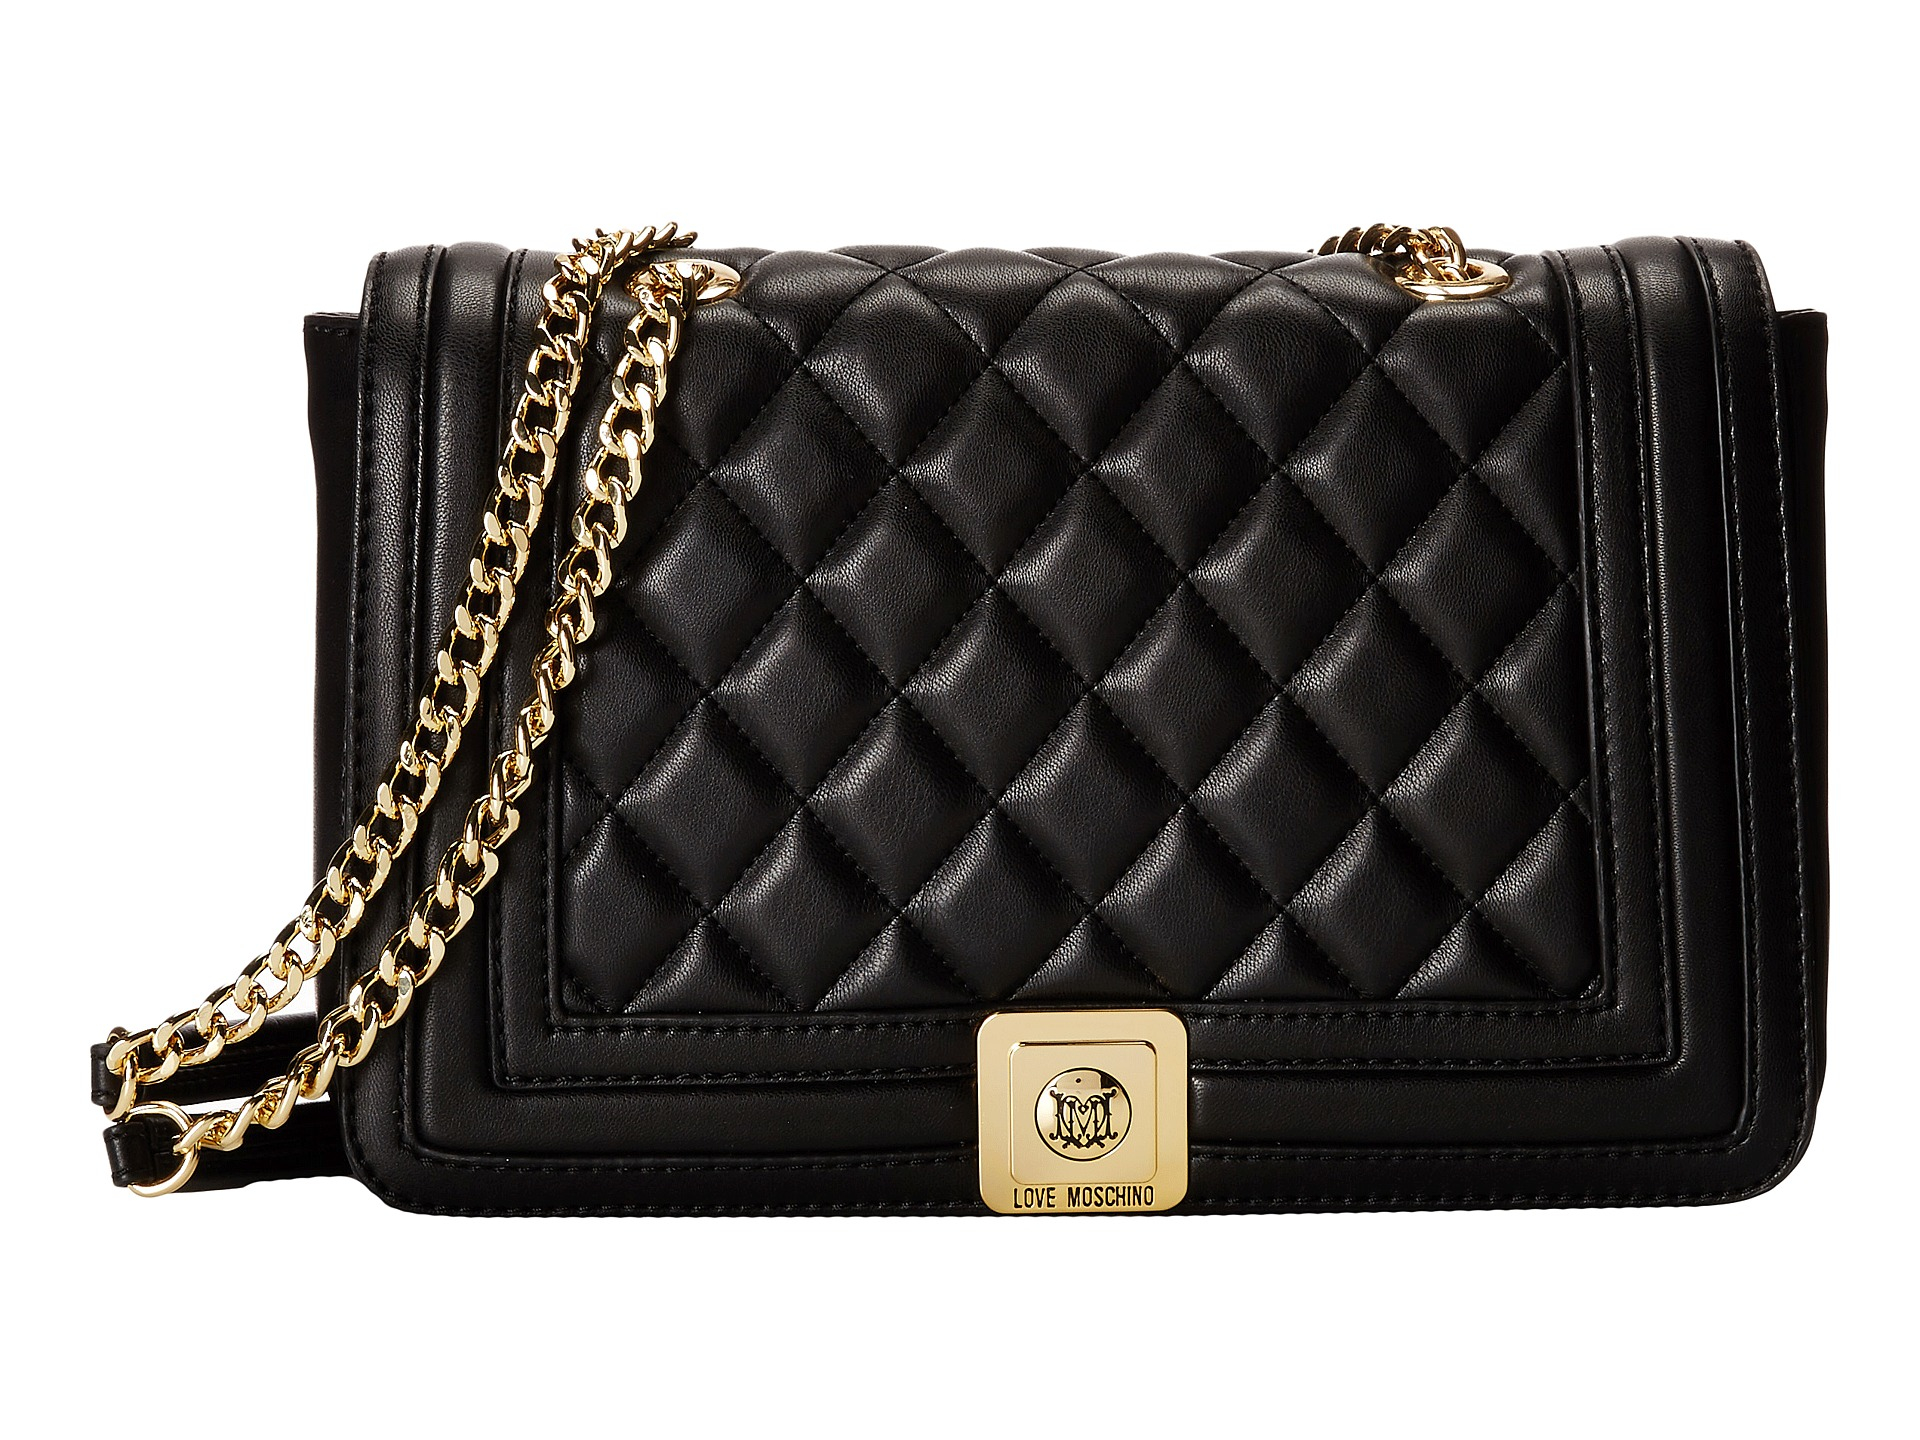 Lyst - Love moschino Quilted Flap Vers Crossbody Bag in Black : quilted crossbody - Adamdwight.com